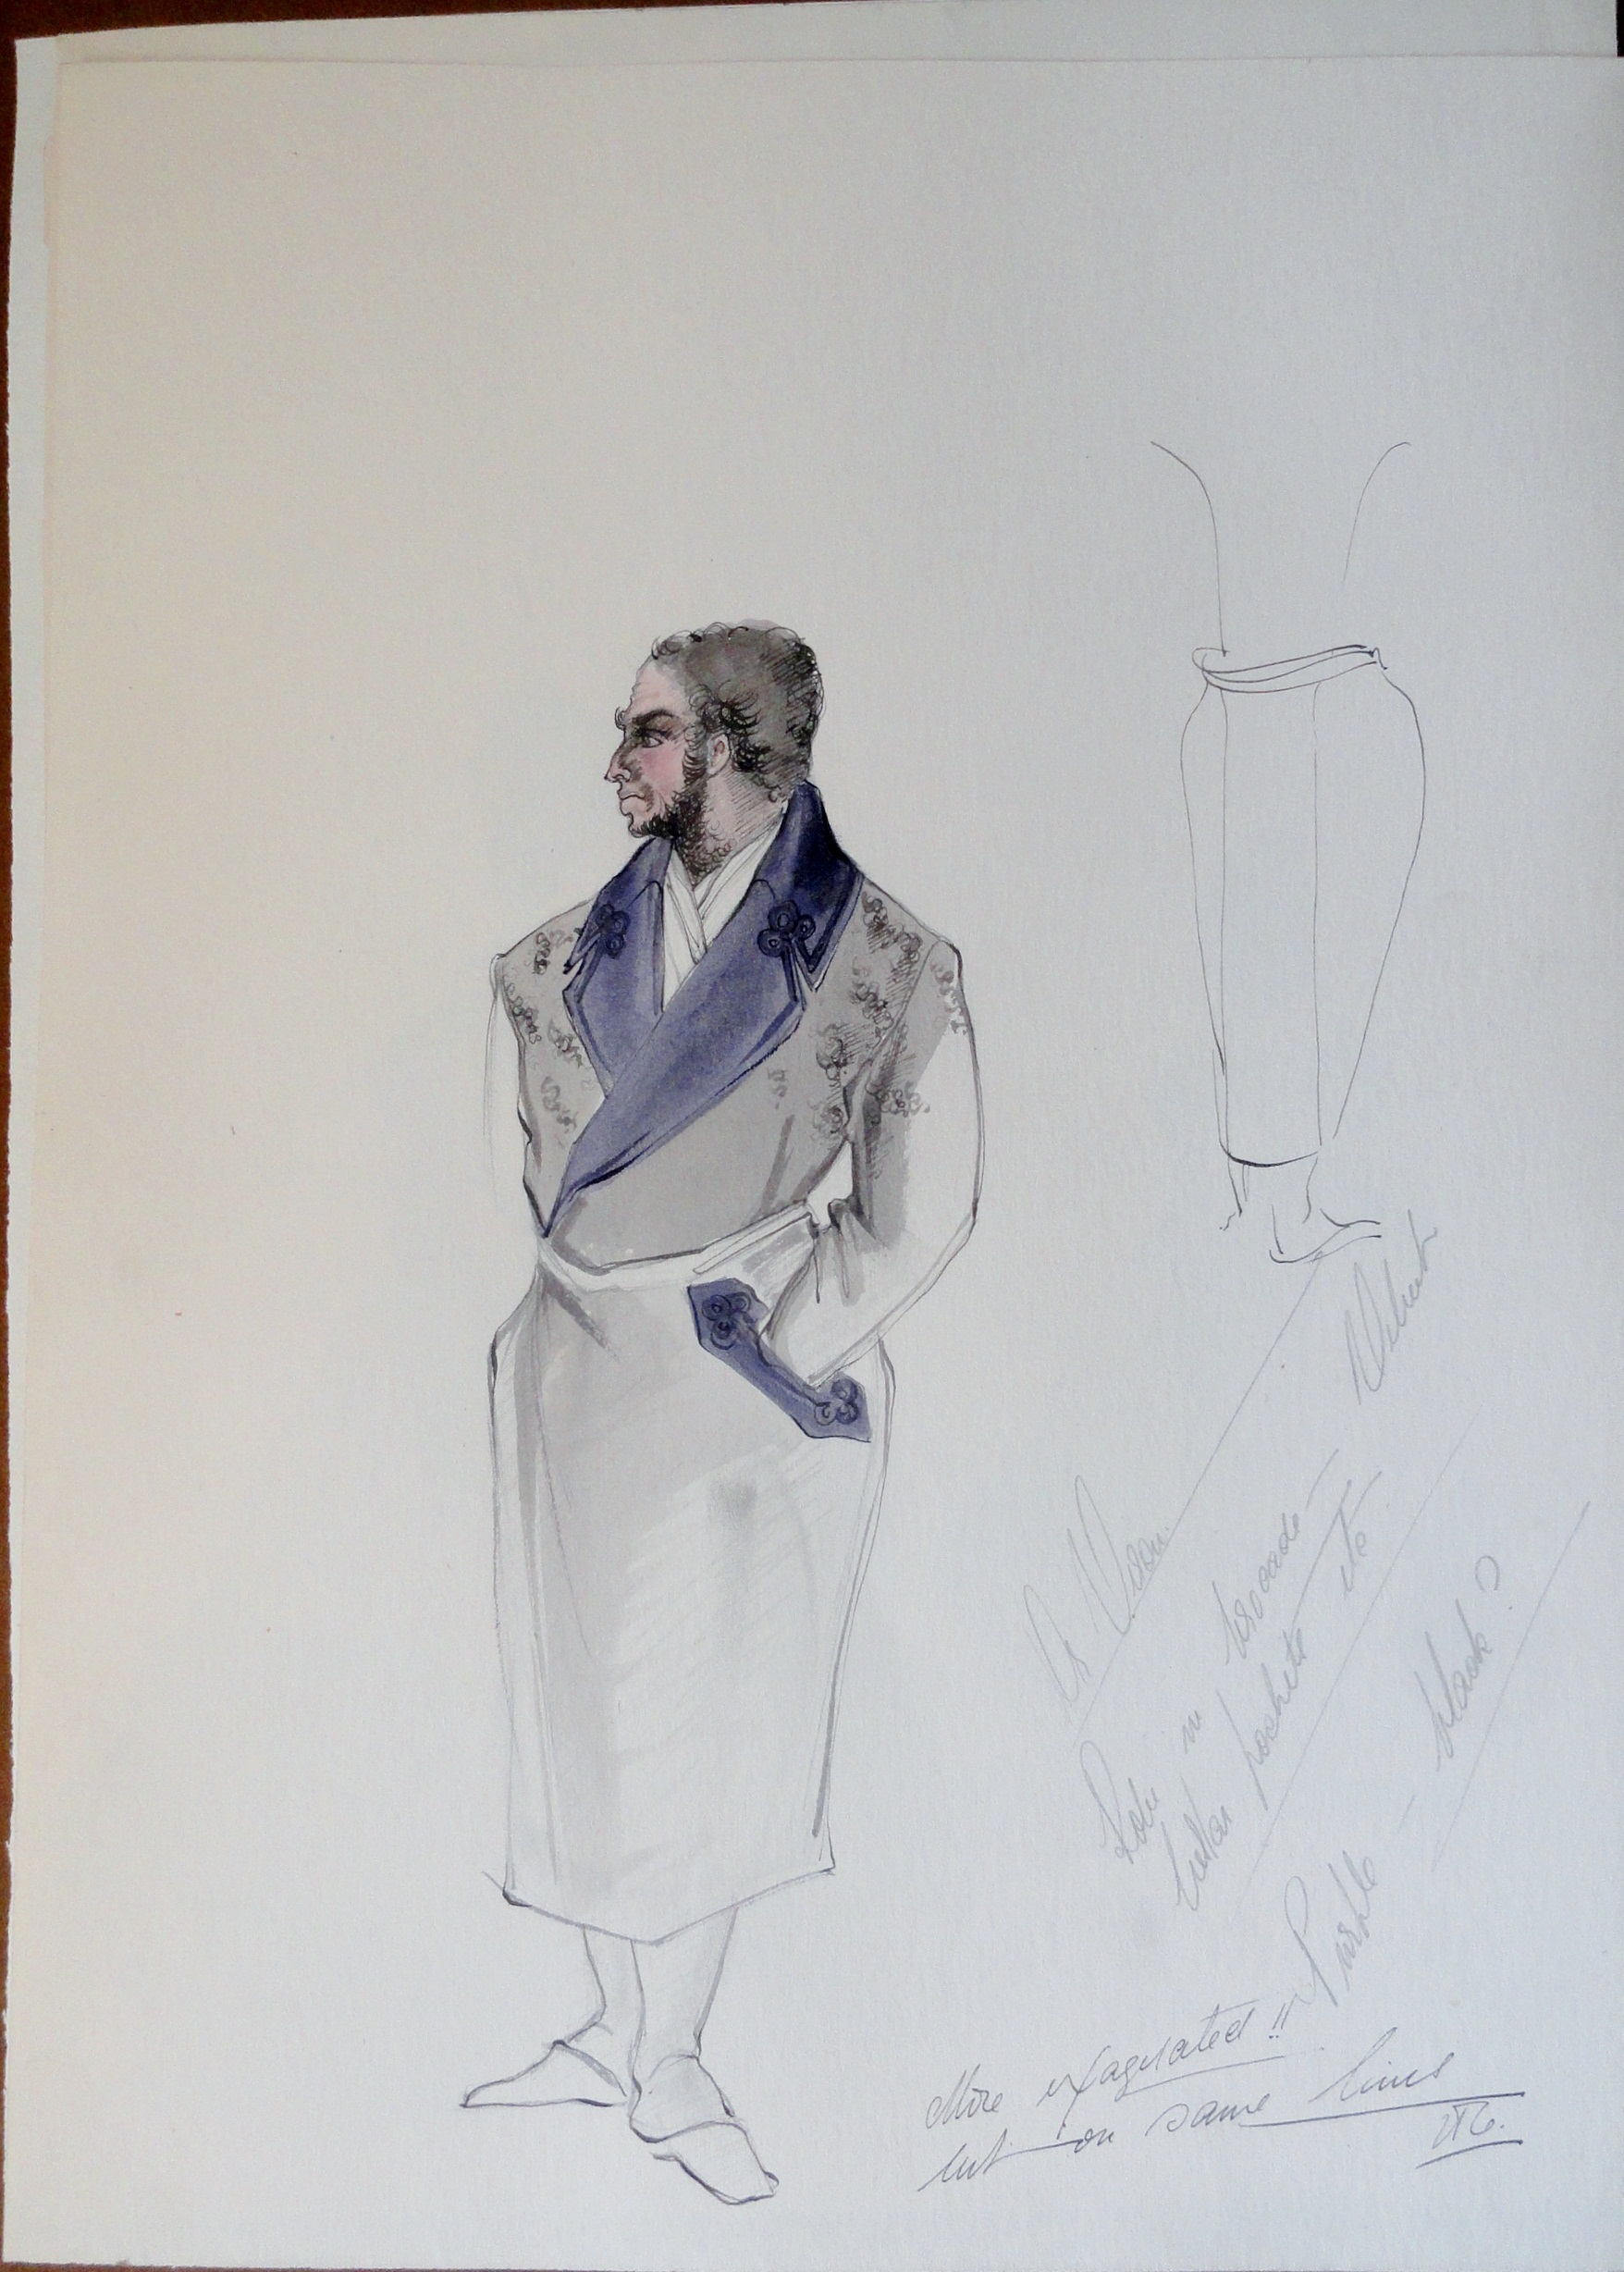 Dr Veron, study, robe with purple lapel, with artists' notes. Pen and Ink and Watercolor. From the Rachel Portfolio by Owen Hyde Clark. $50.00.